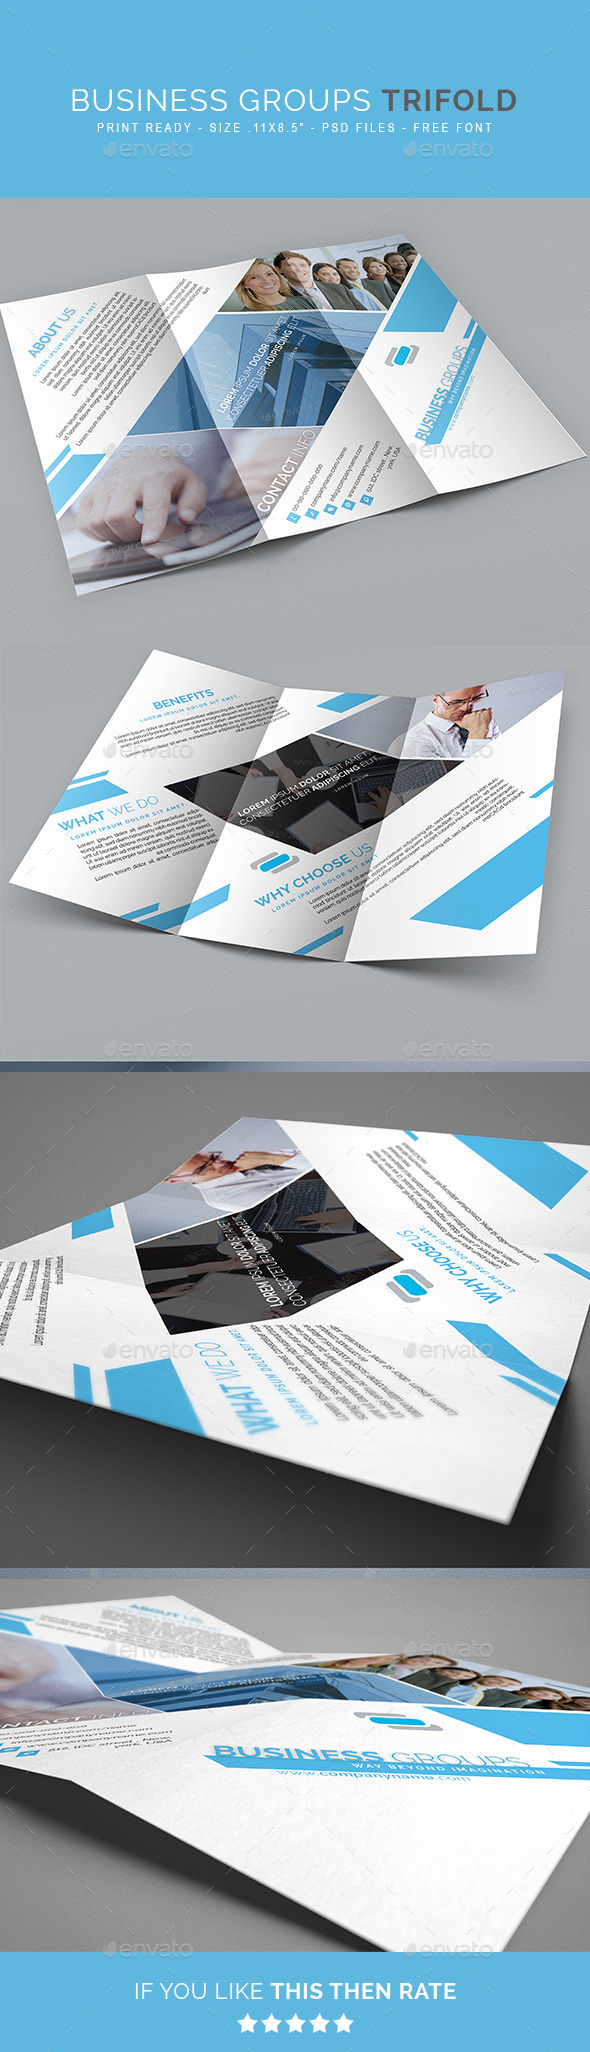 Business Group Multipurpose Trifold Brochure - Corporate Brochures